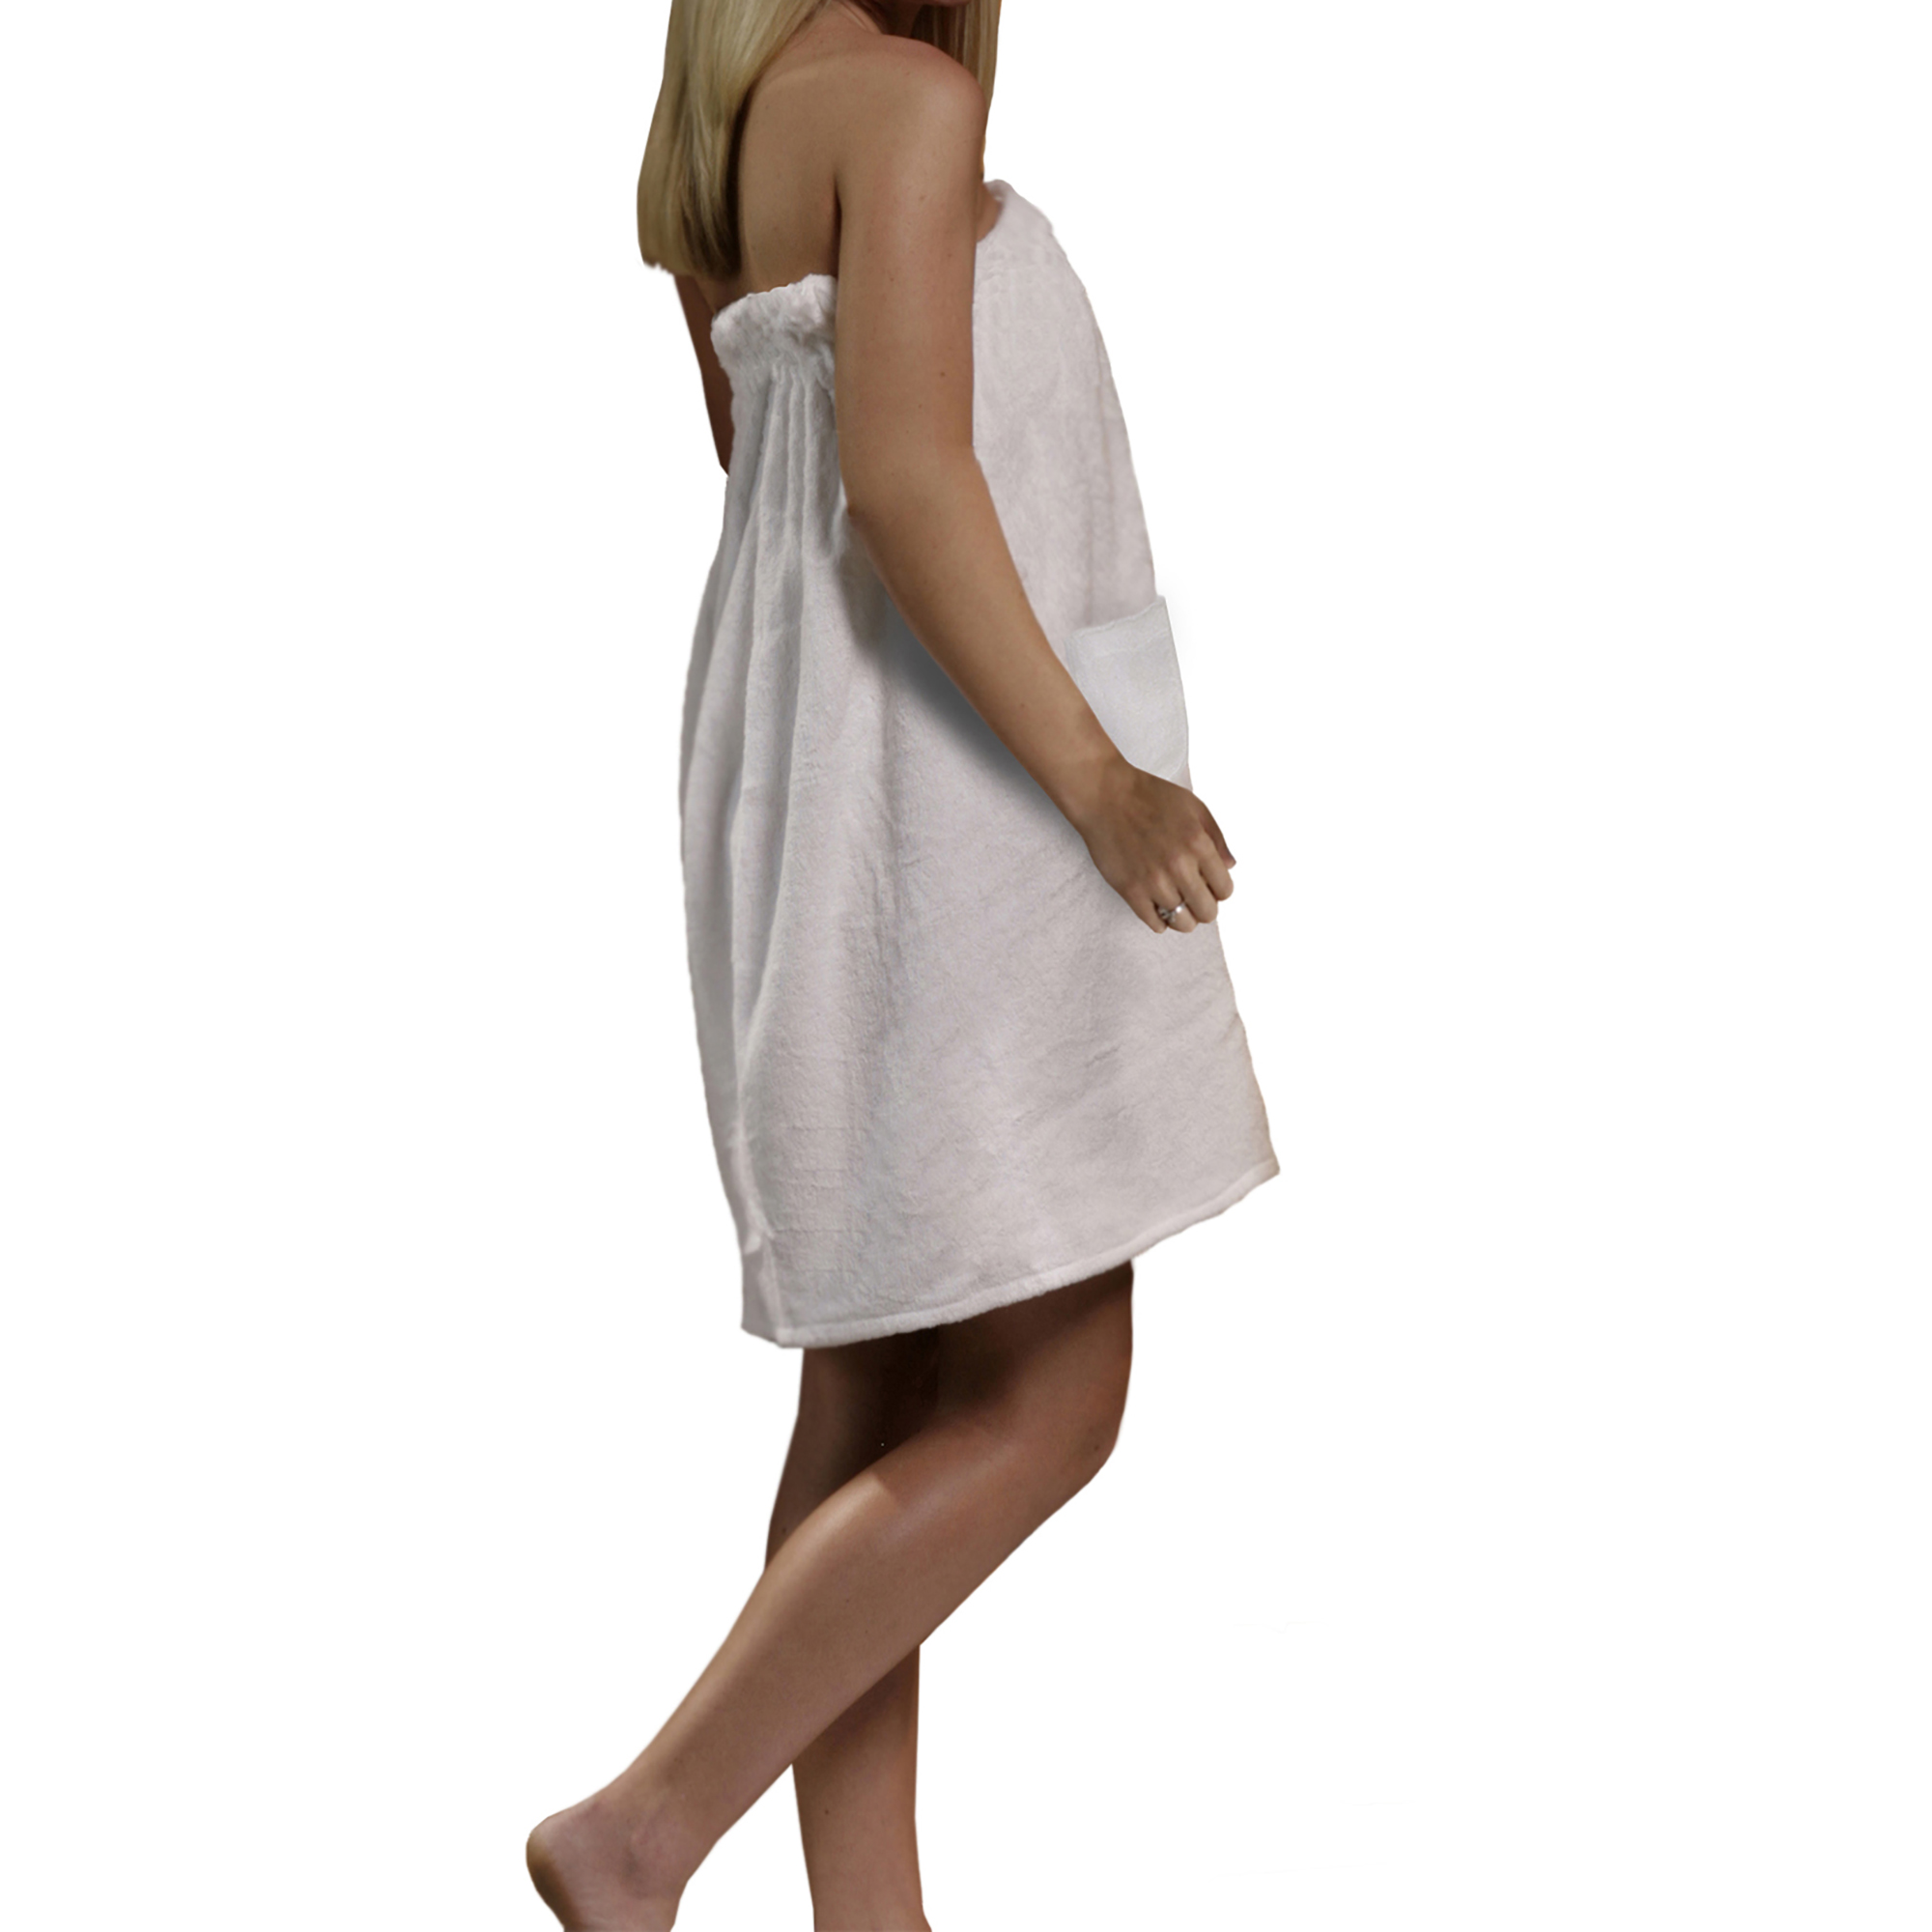 Radiant Saunas Women's Spa & Bath Terry Cloth Towel Wrap White by Blue Wave